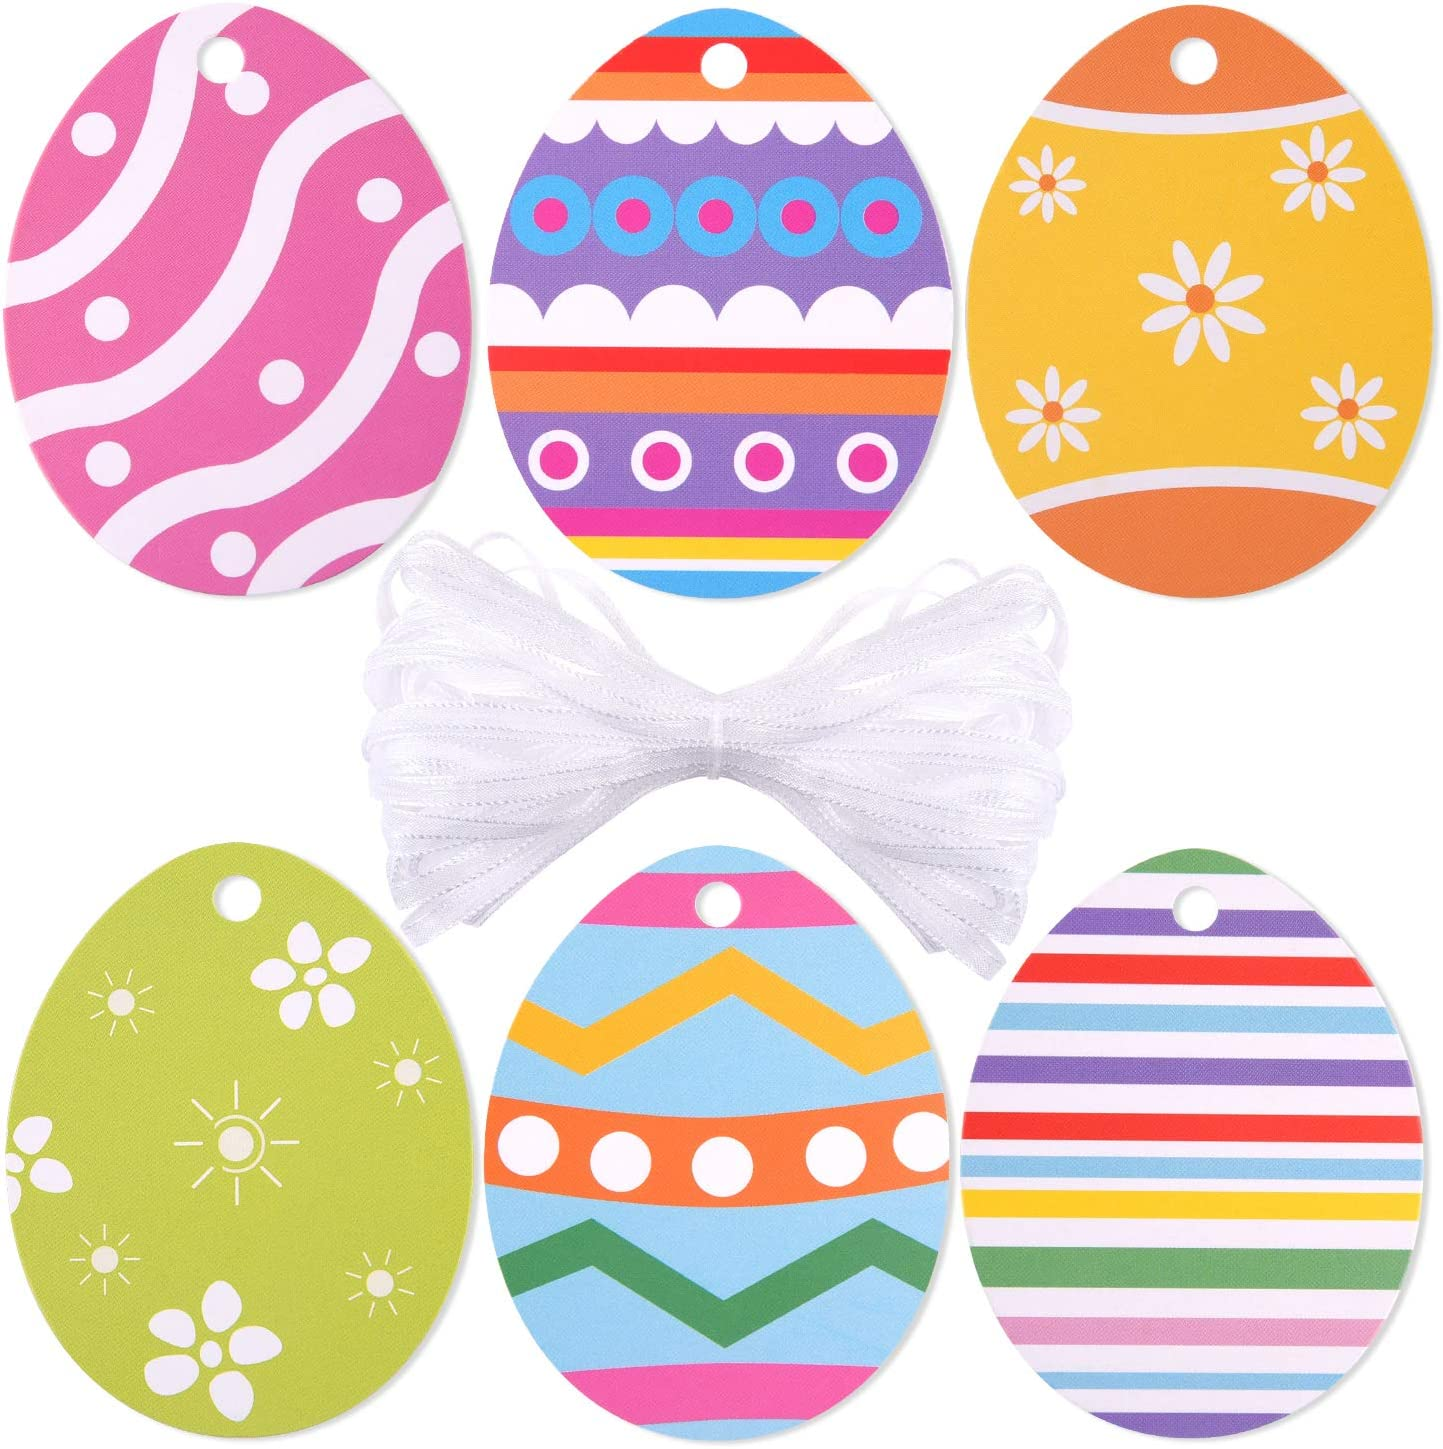 - Amazon.com: TUPARKA 60 Pcs Colour Easter Egg Paper Craft With